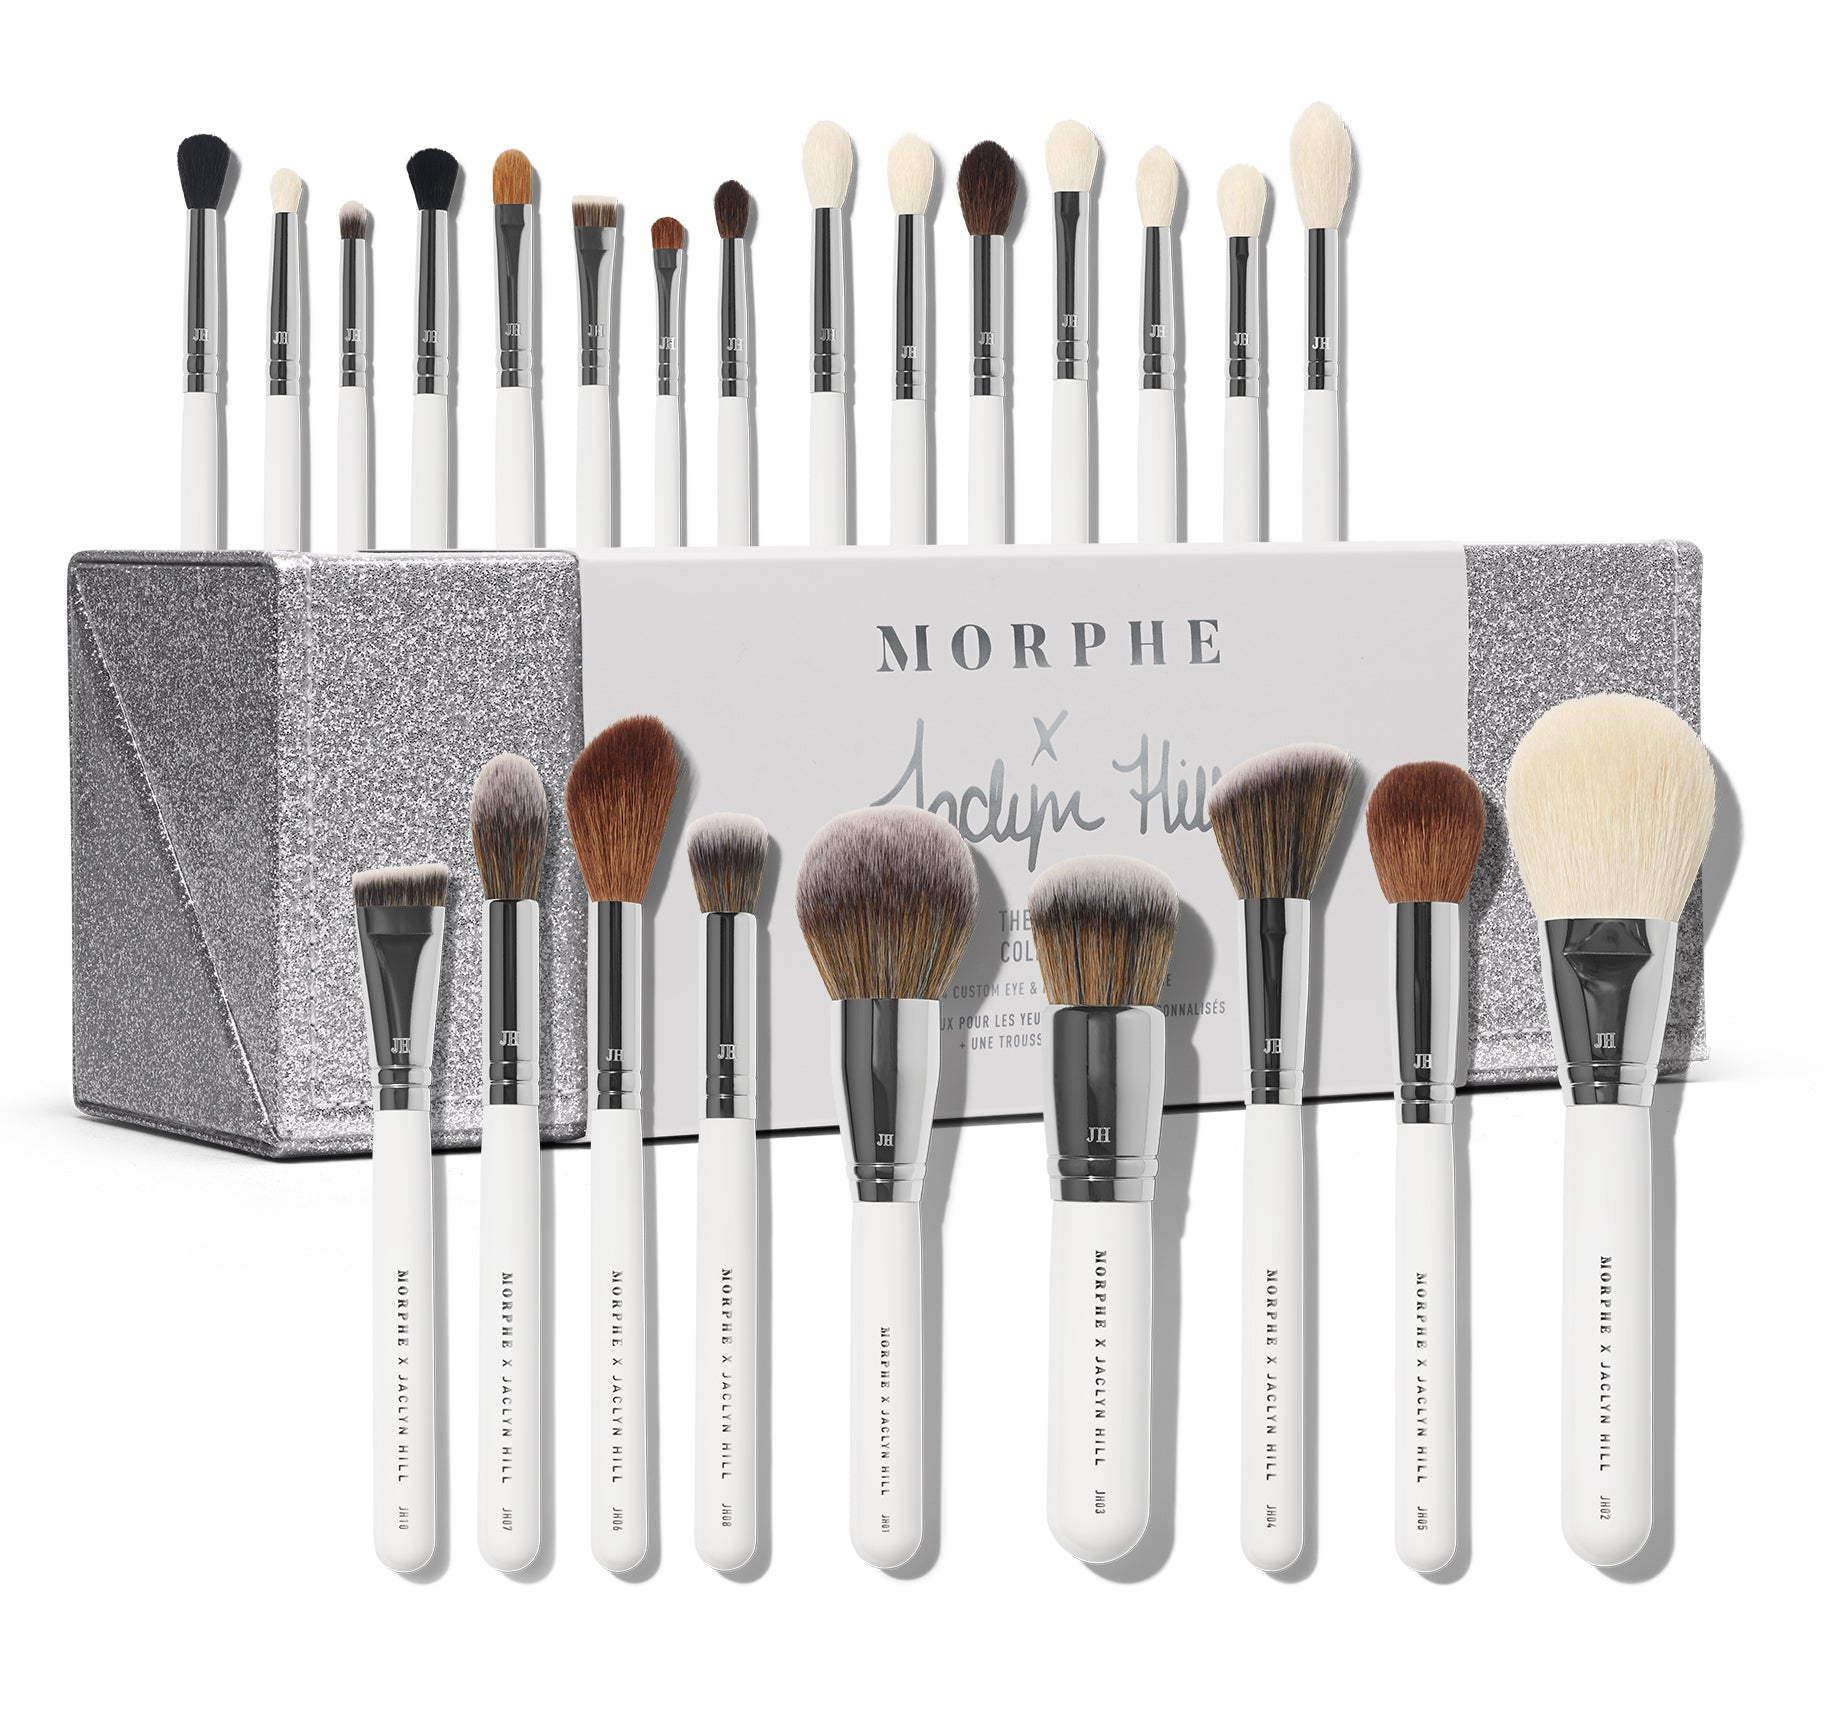 MORPHE X JACLYN HILL THE MASTER COLLECTION, view larger image